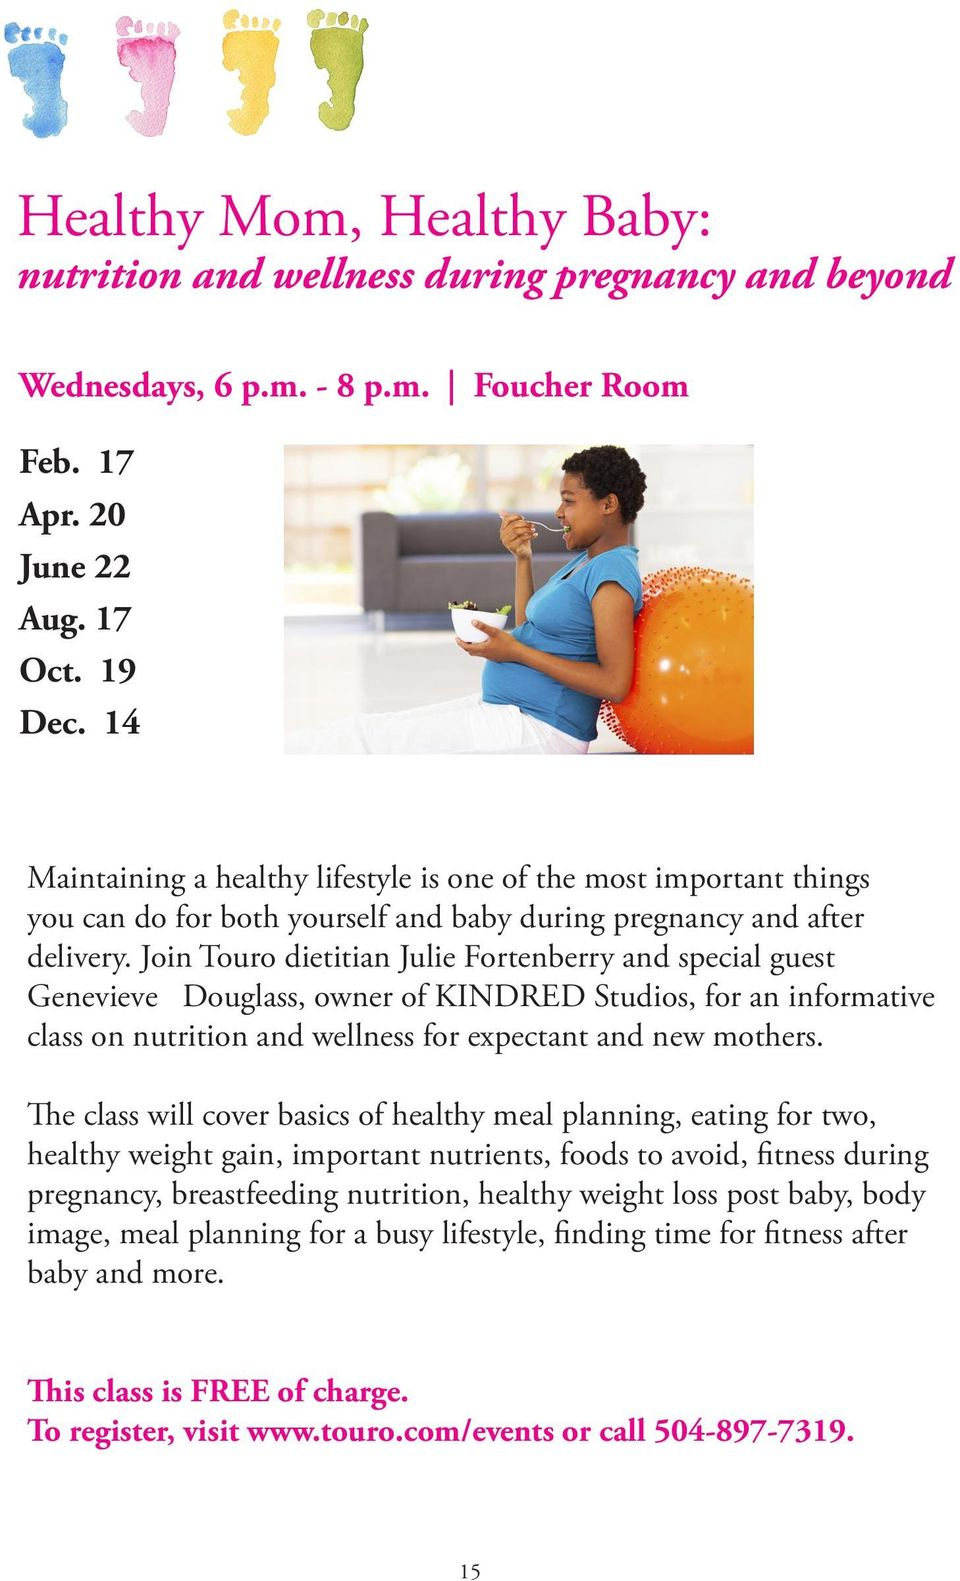 Join Touro dietitian Julie Fortenberry and special guest Genevieve Douglass, owner of KINDRED Studios, for an informative class on nutrition and wellness for expectant and new mothers.